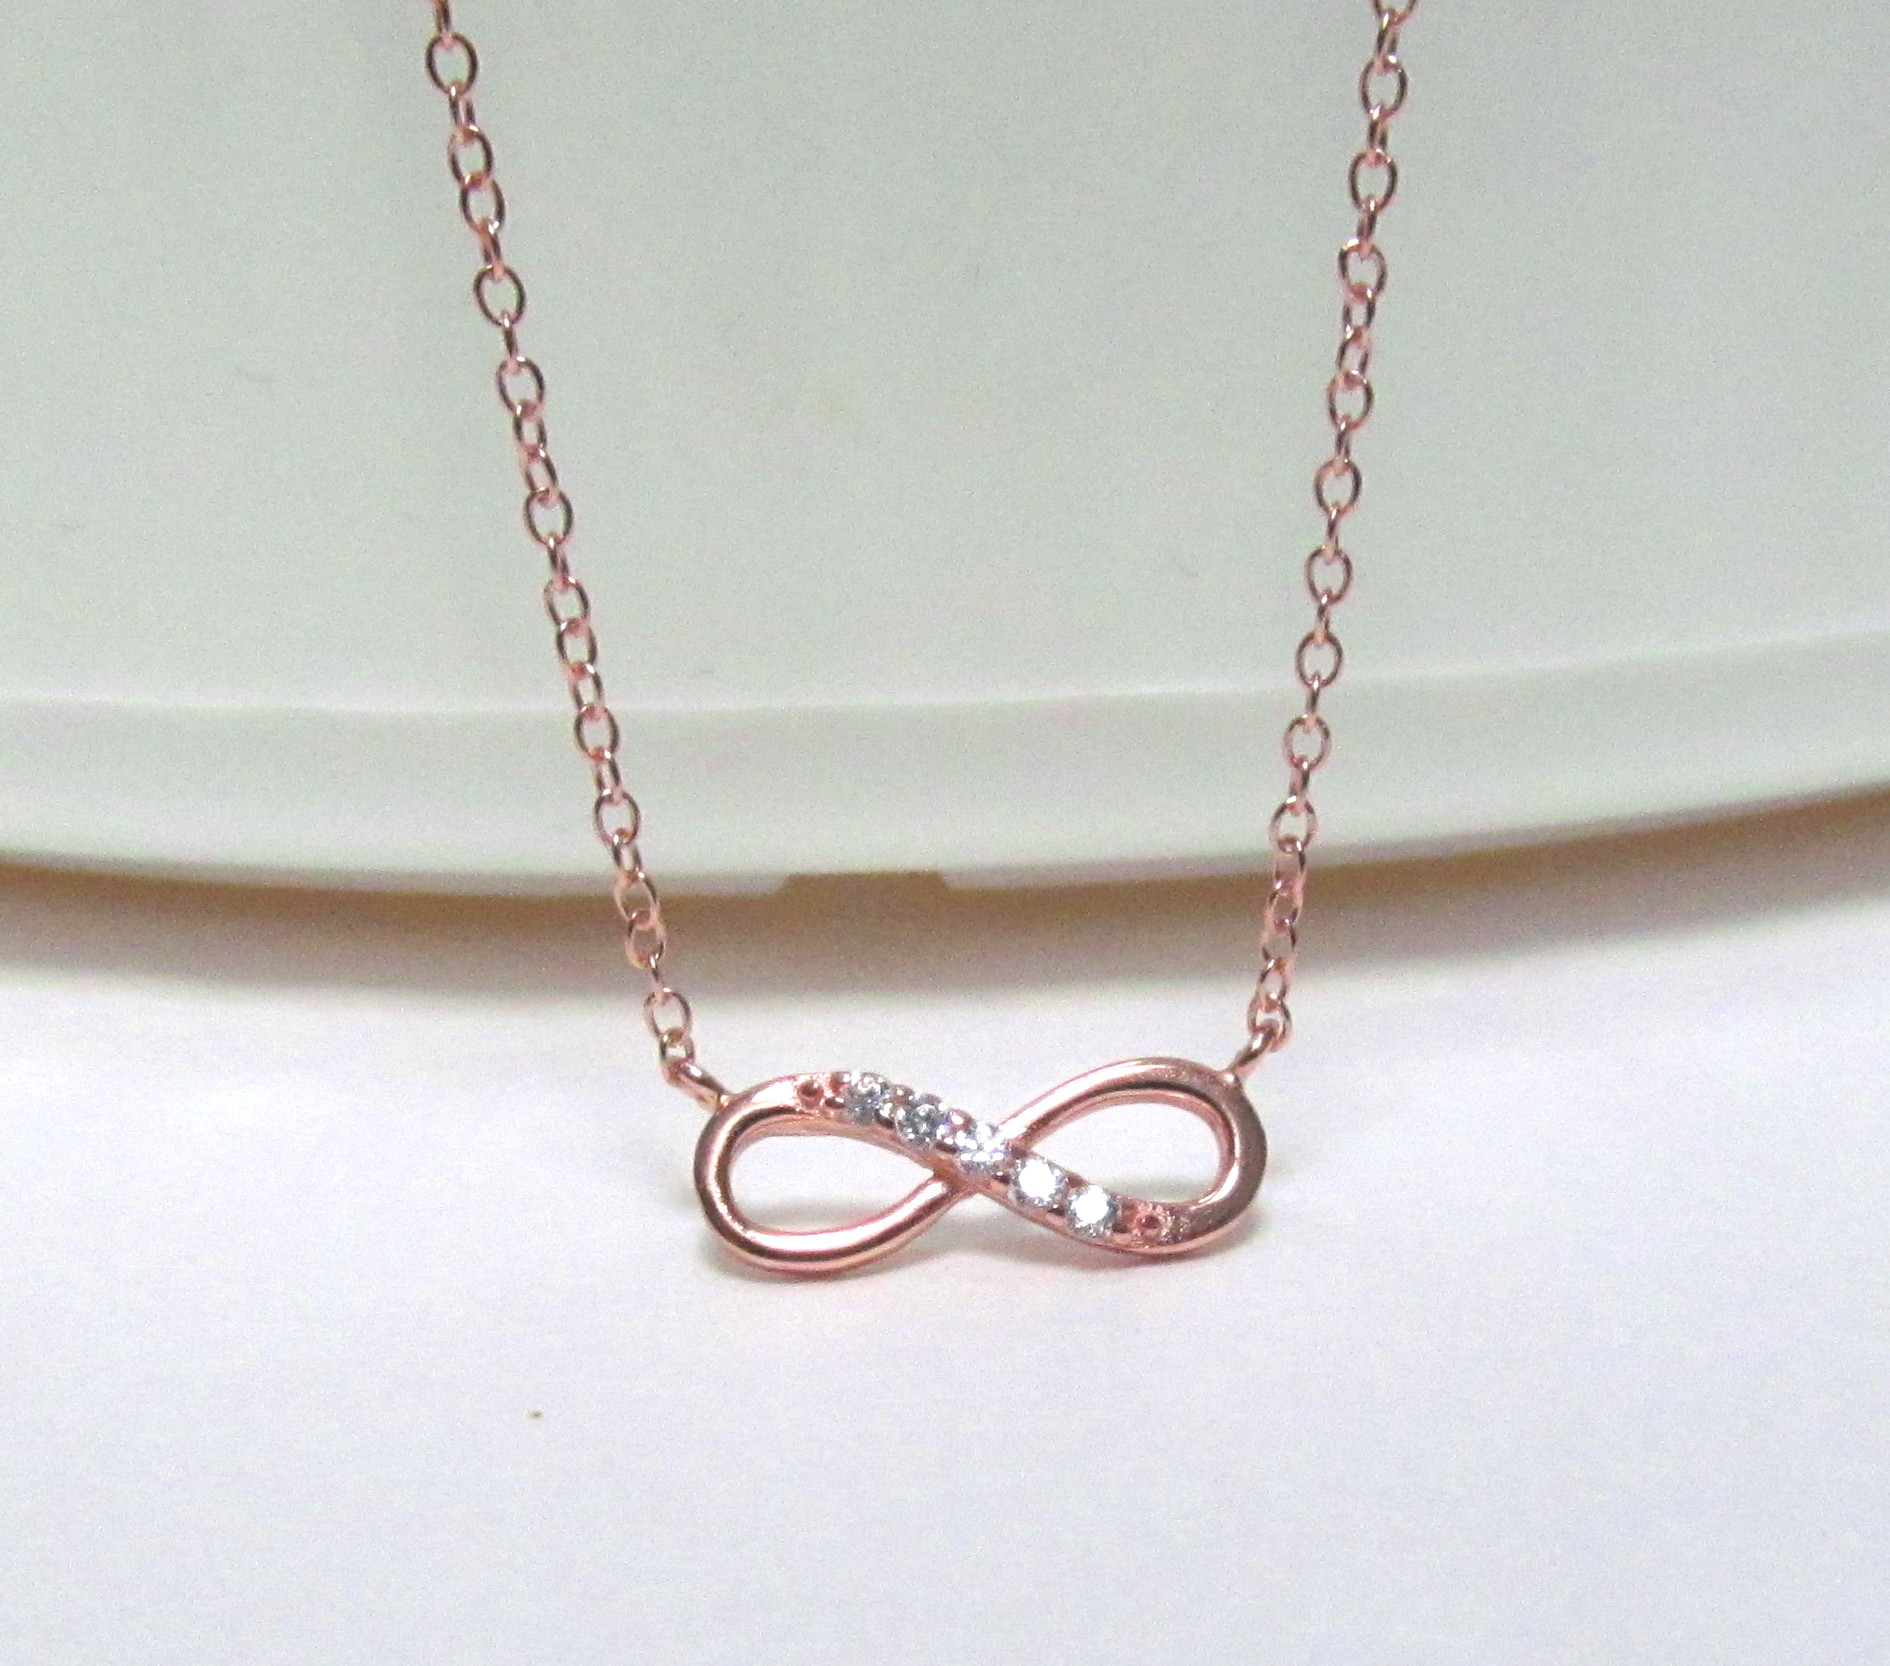 necklace grams cz symbol plated mm p width chains sterling infinity rhodium weight length silver